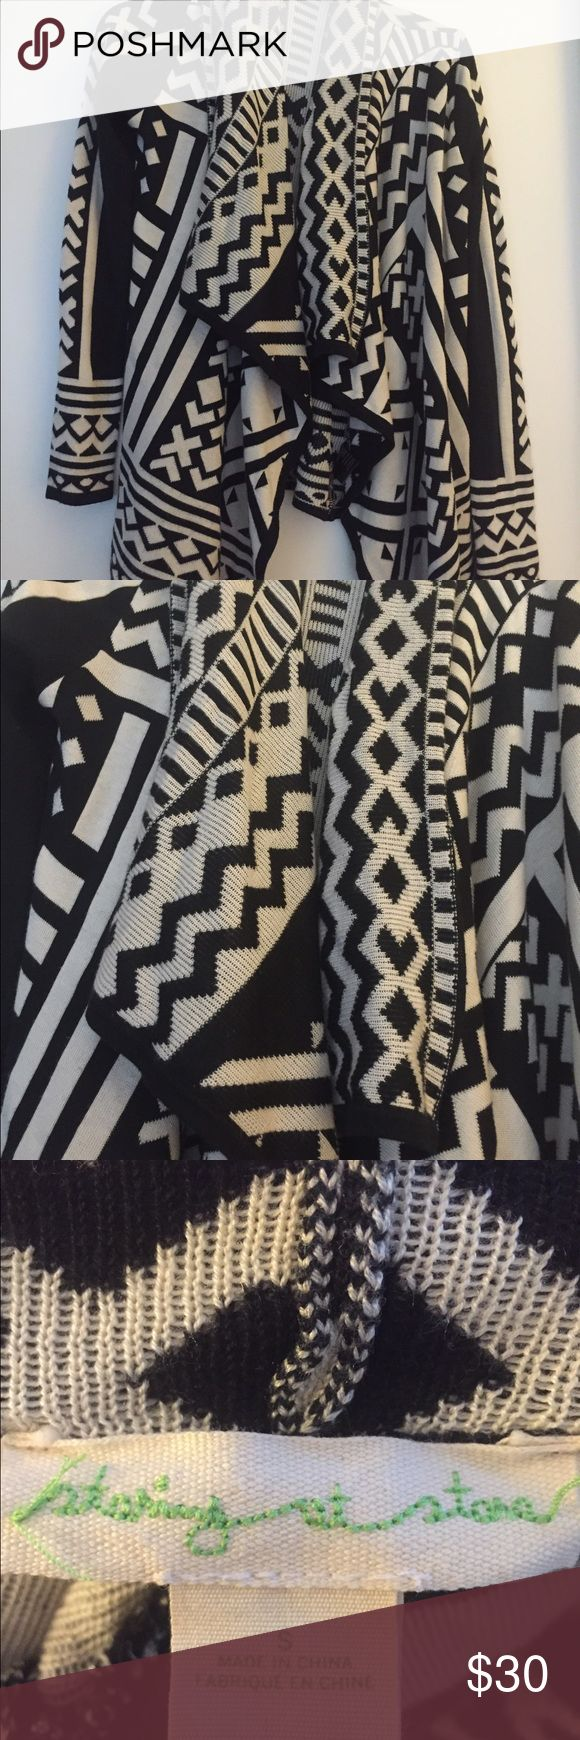 Urban outfitters staring at stars cardigan Adorable tribal print cardigan. New condition! Staring at Stars Sweaters Cardigans